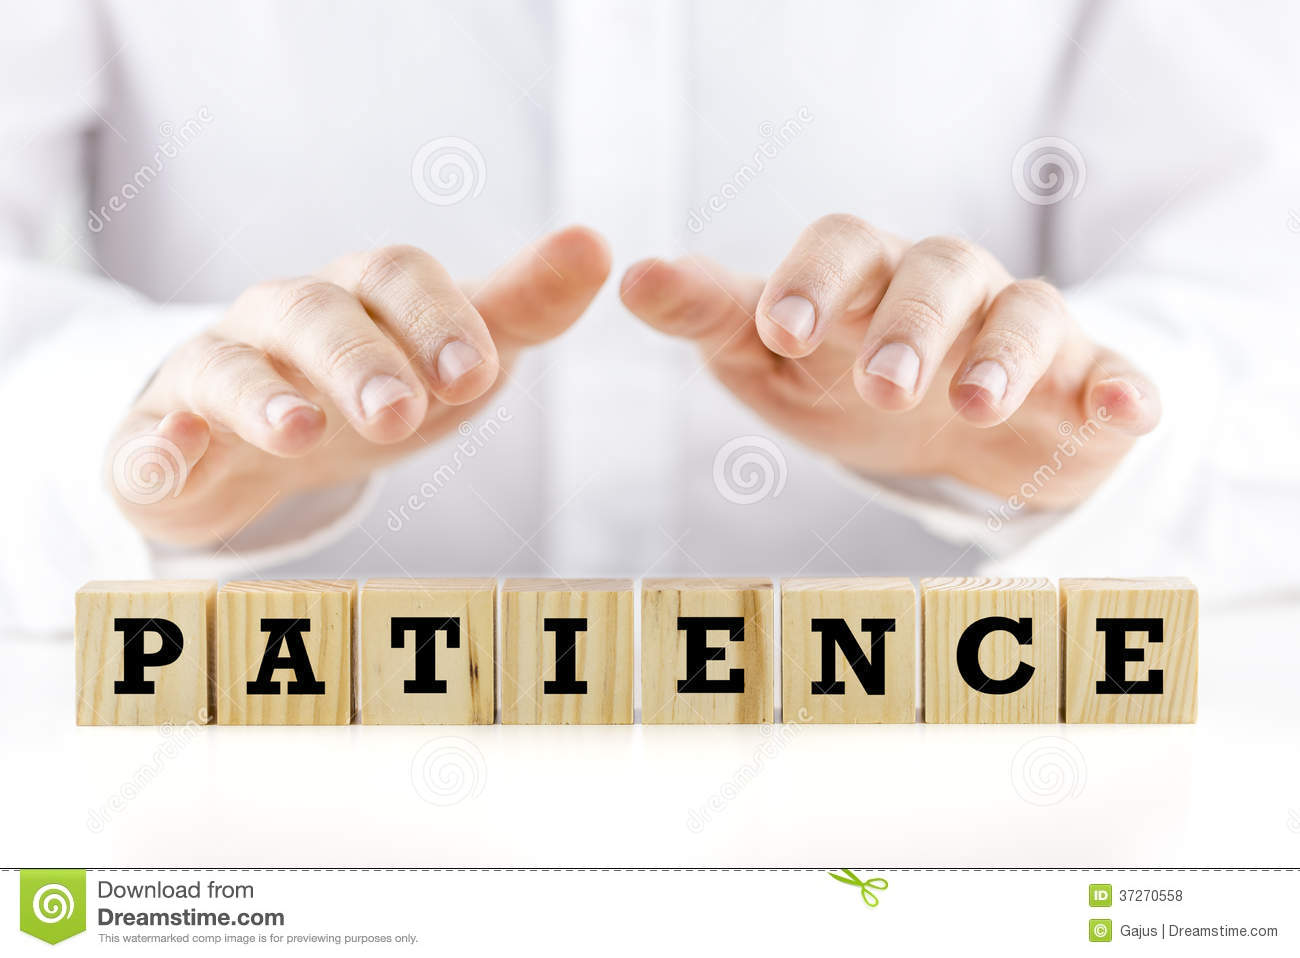 Patience Royalty Free Stock Photos - Image: 37270558